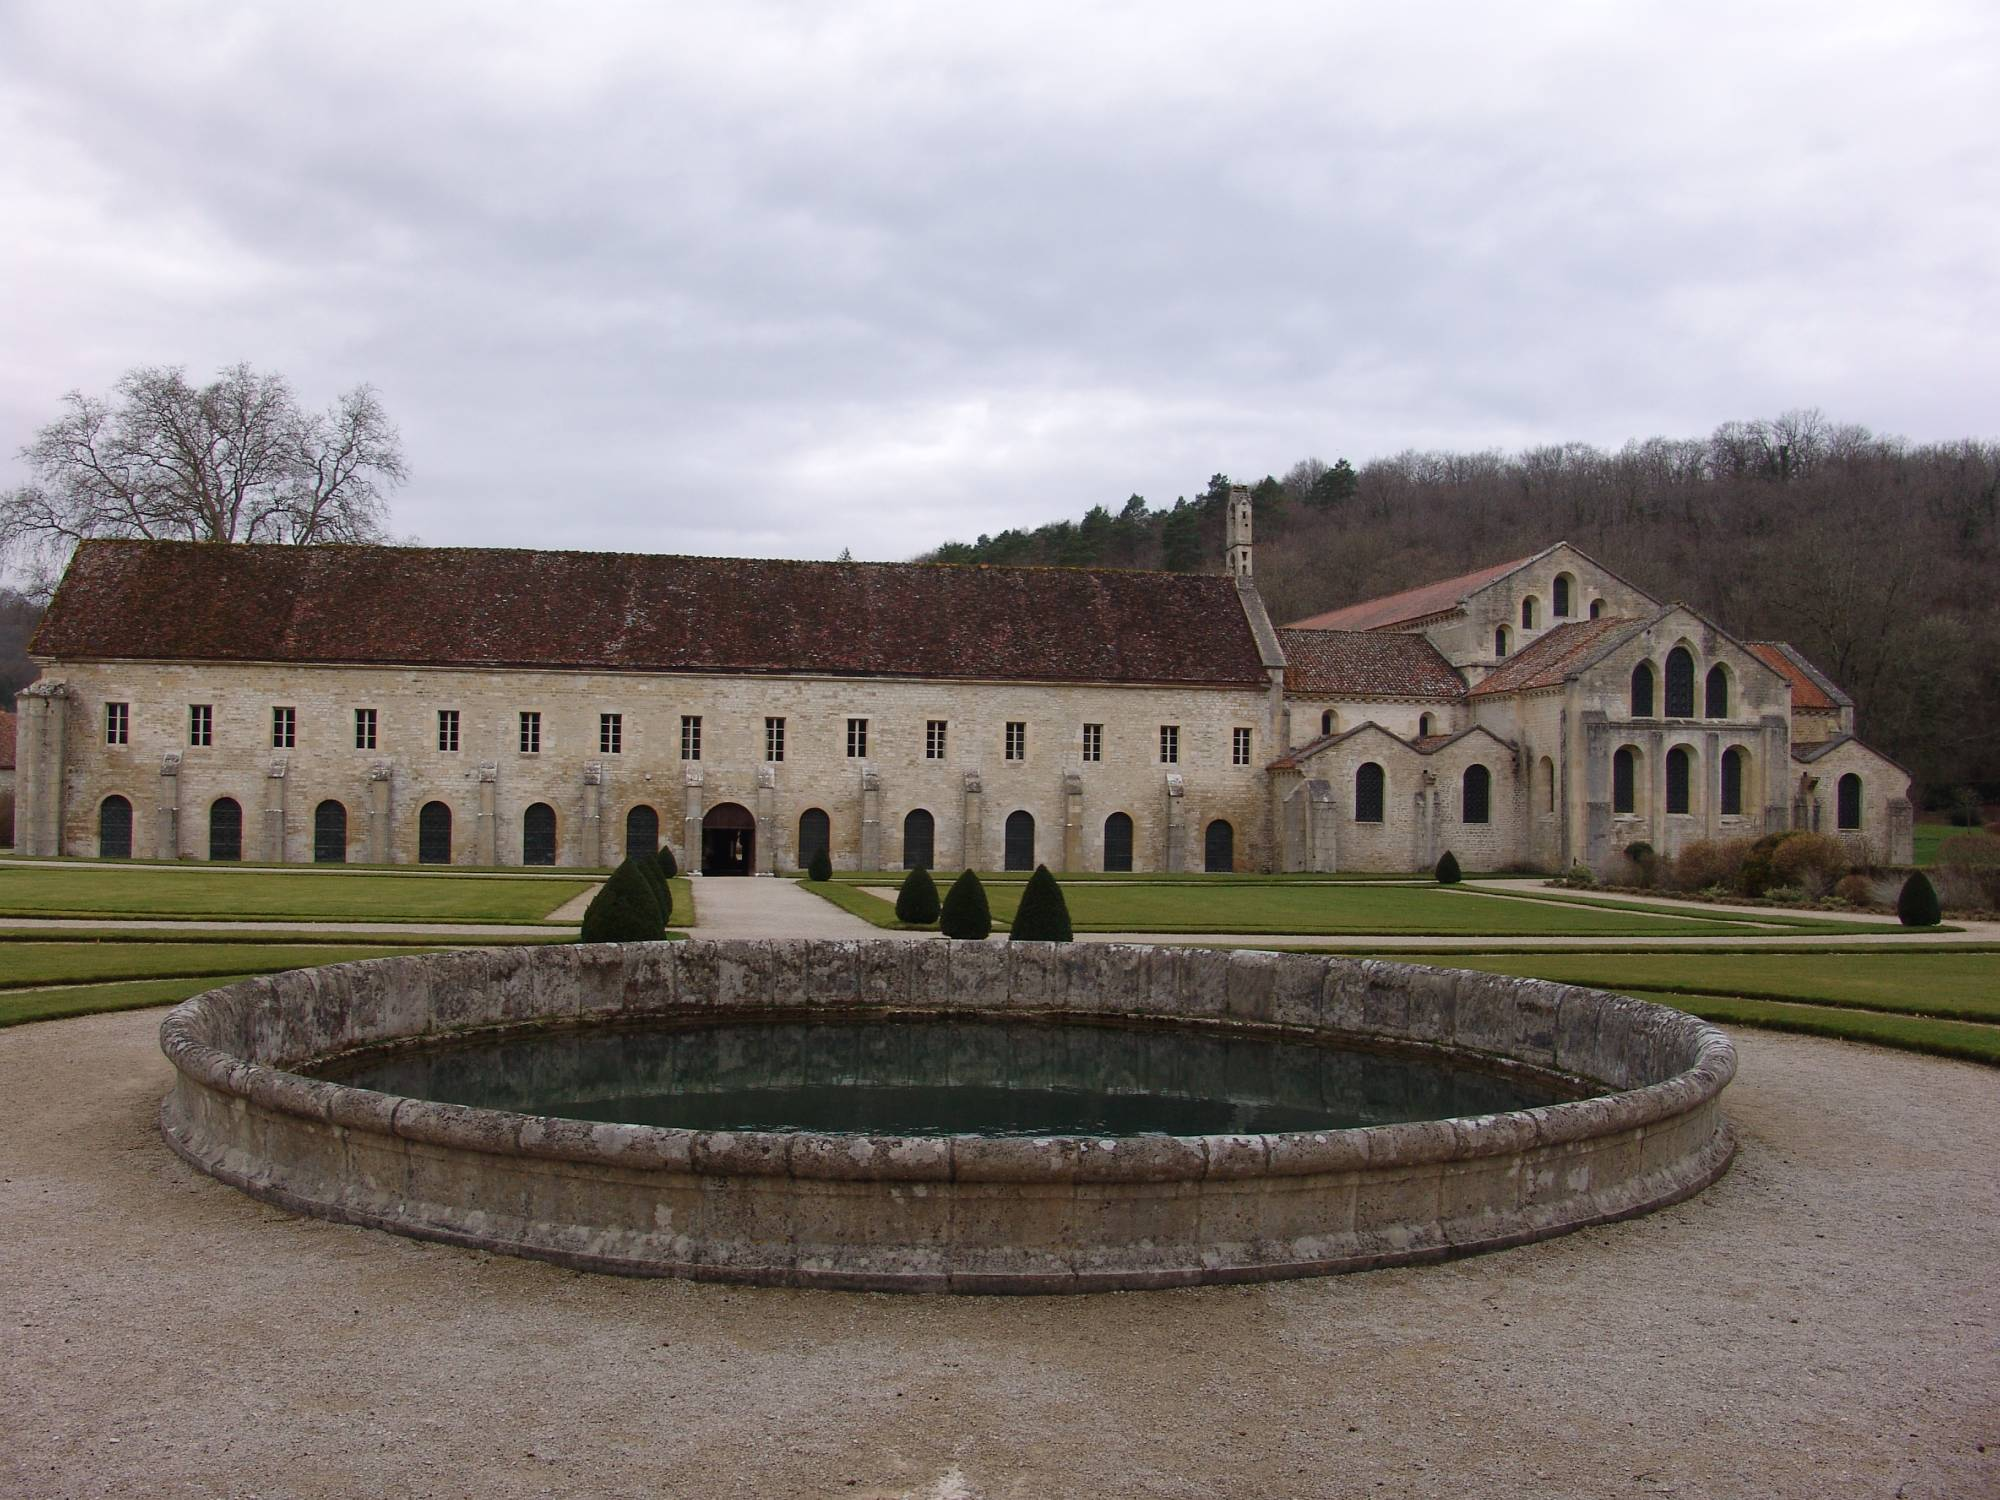 Burgundy - Abbaye de Fontenay photo